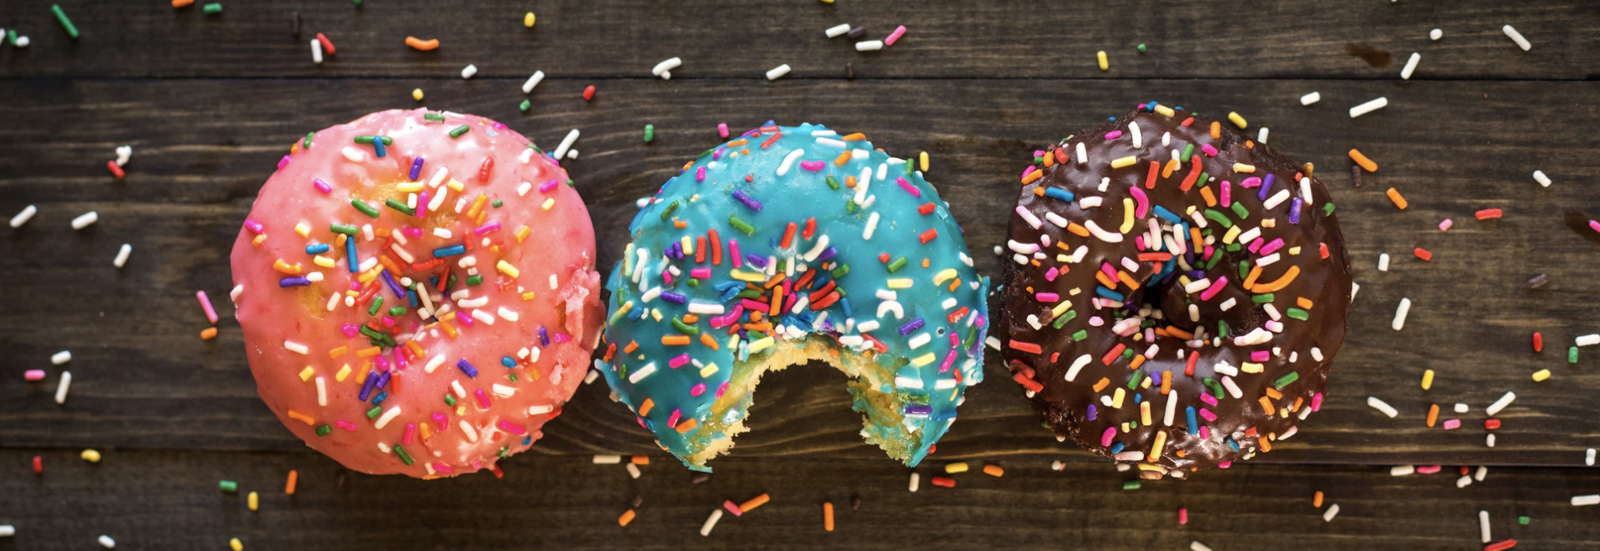 Three donuts with sprinkles on a table next to each other.